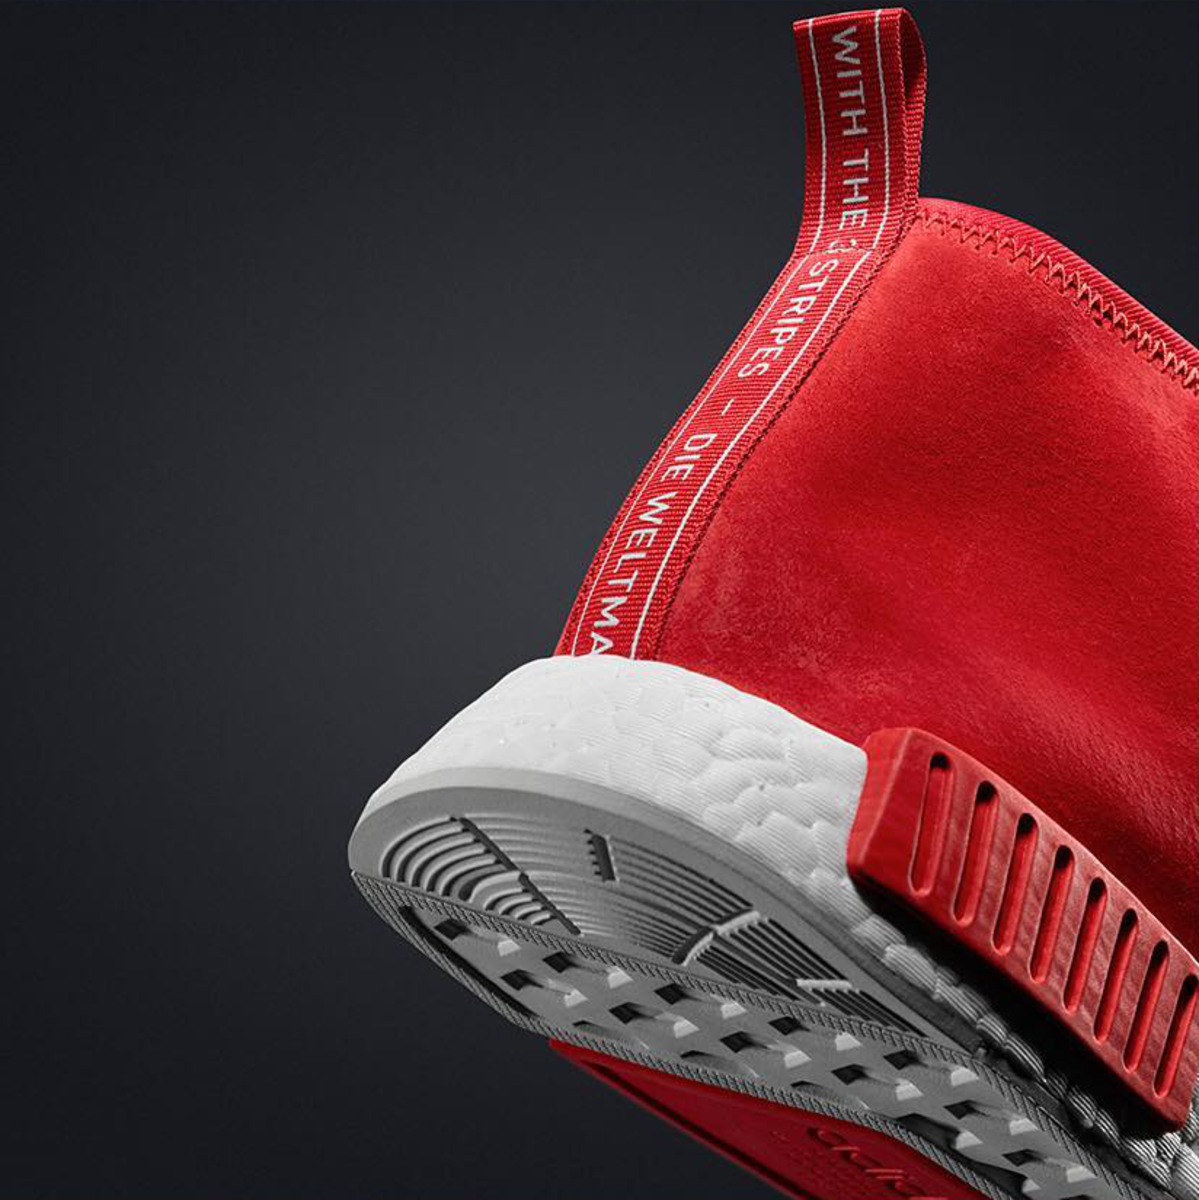 adidas-nmd-chukka-red-suede-03.png